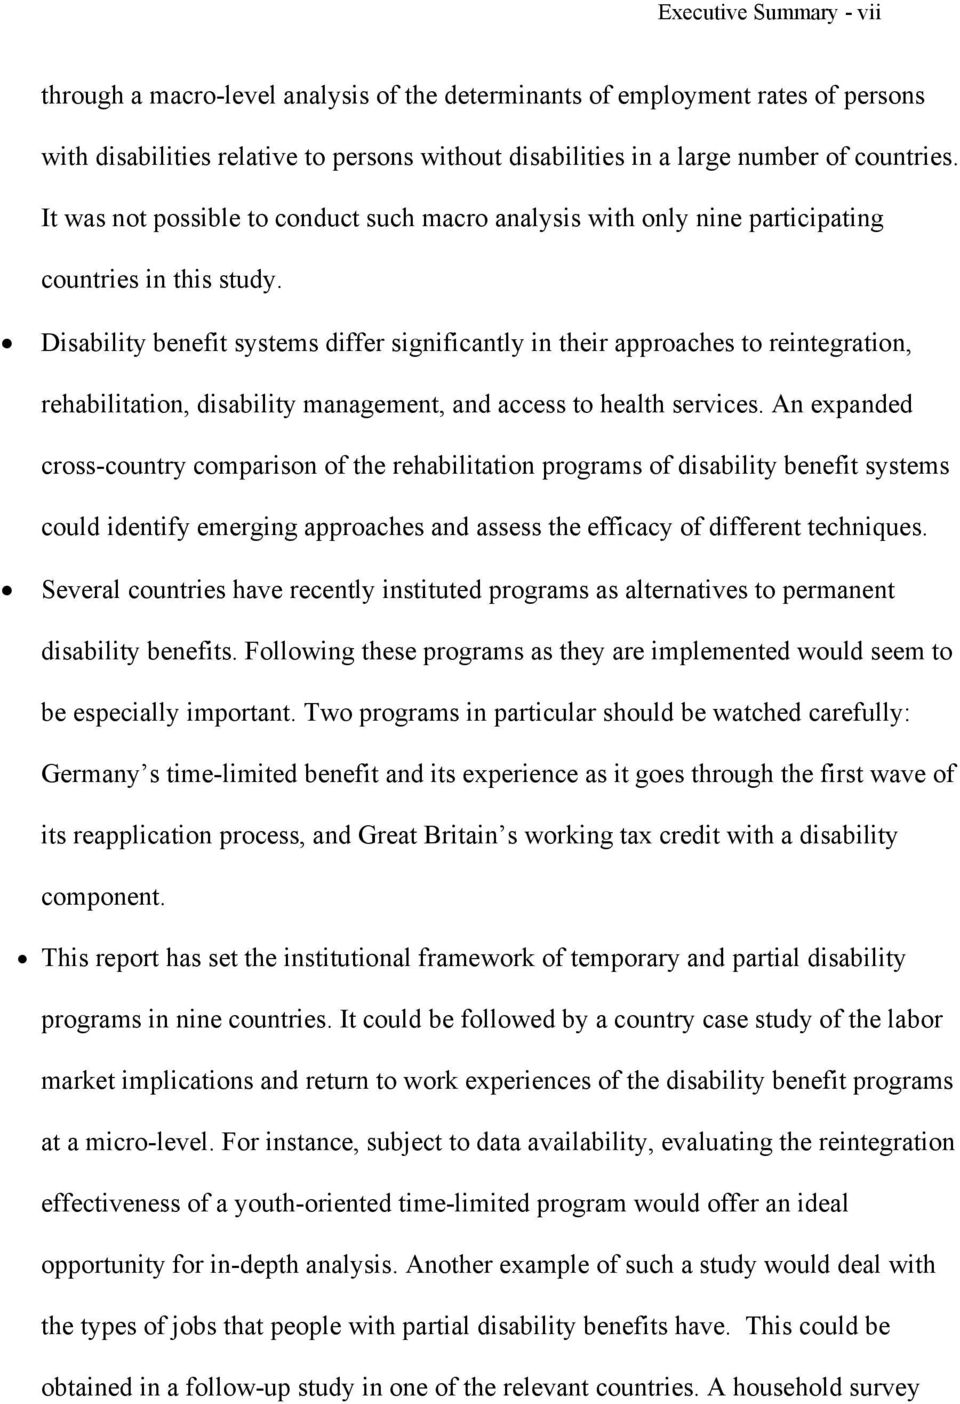 Disability benefit systems differ significantly in their approaches to reintegration, rehabilitation, disability management, and access to health services.